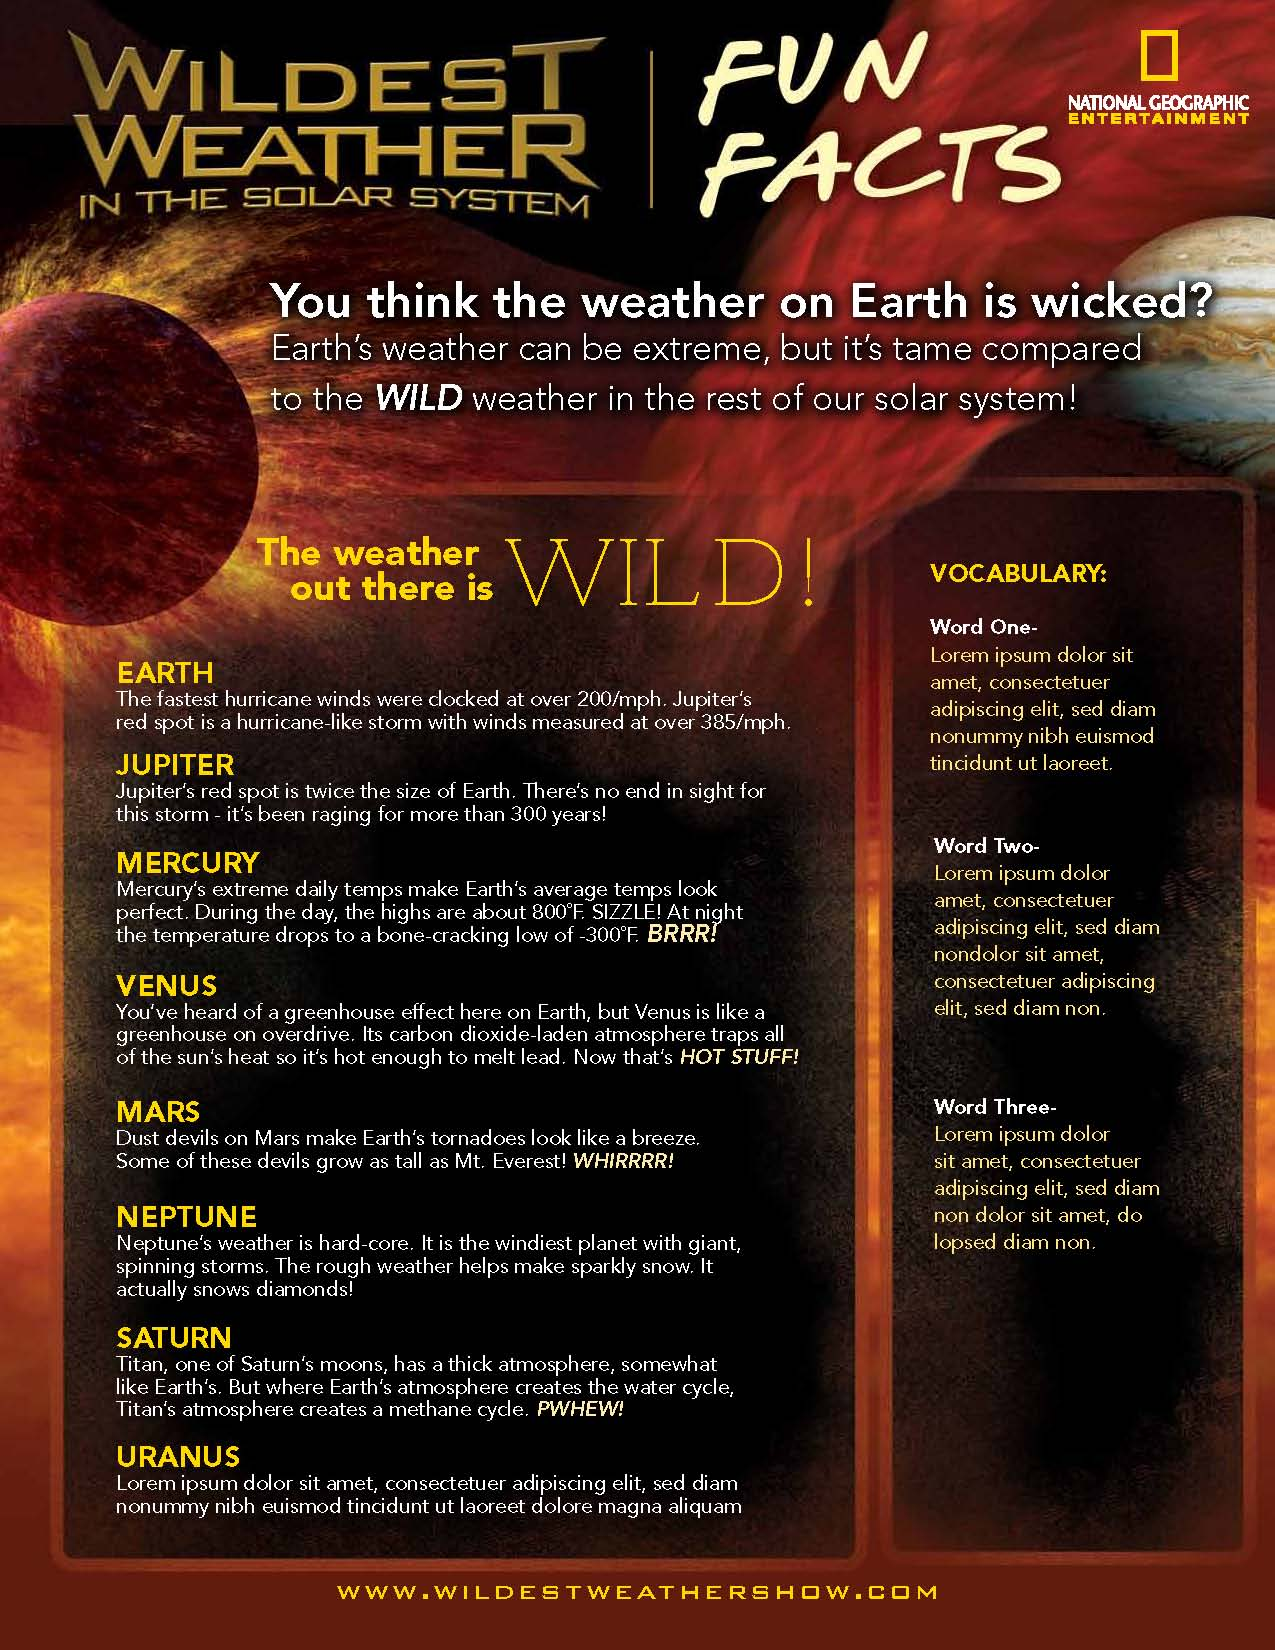 Wild Weather Fun Facts_Page_1